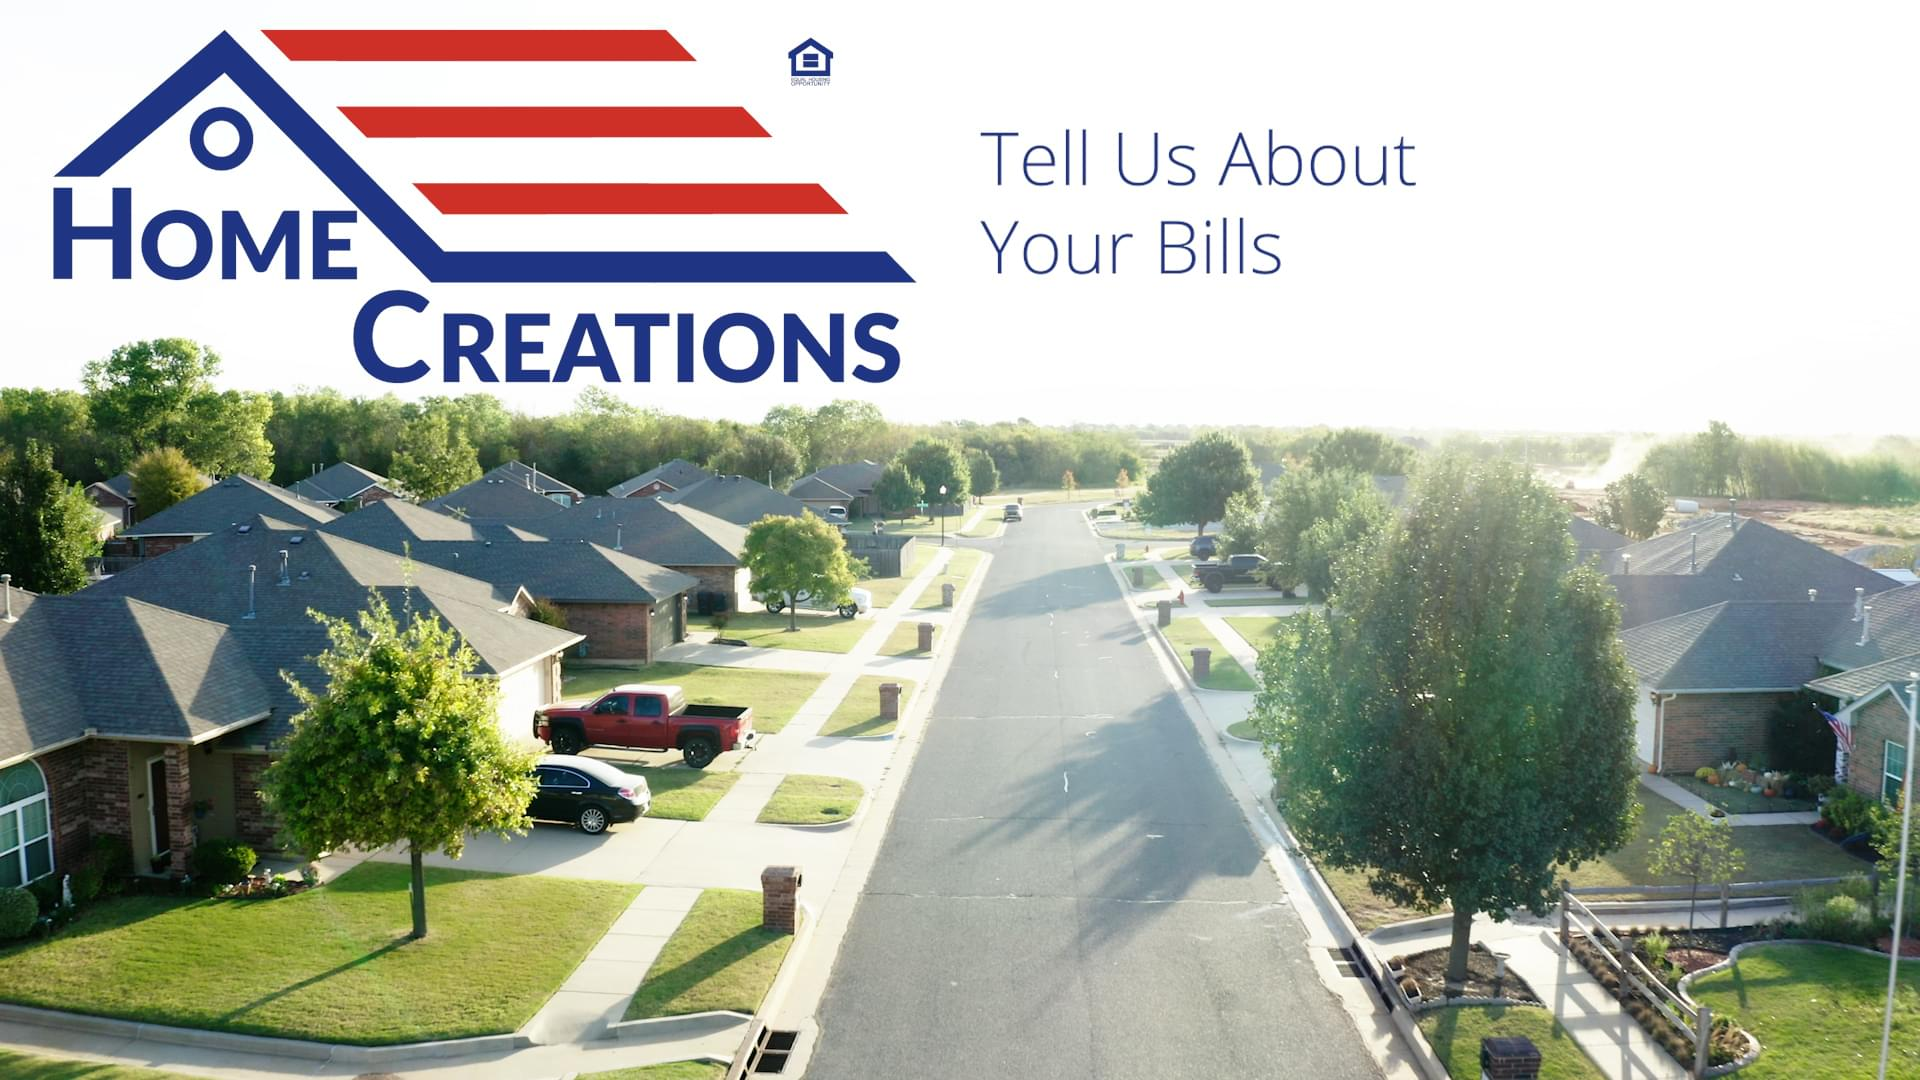 How our homes effect your bills